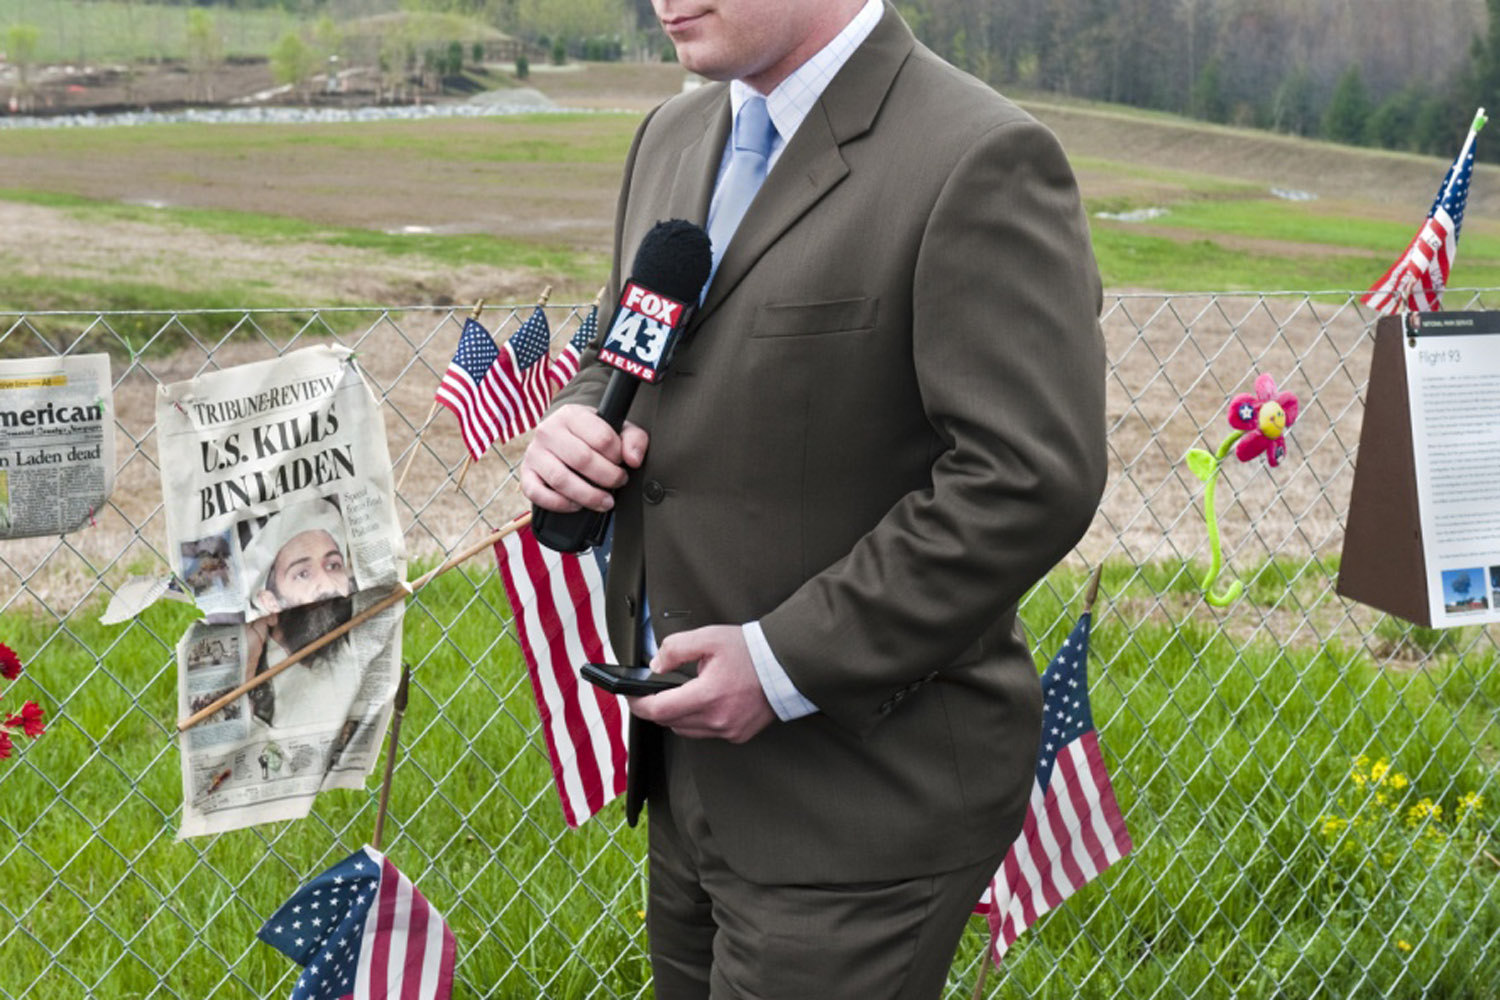 A newscaster stands in front of a fence at the crash site of Flight 93, reporting the news of Osama Bin Laden's death.